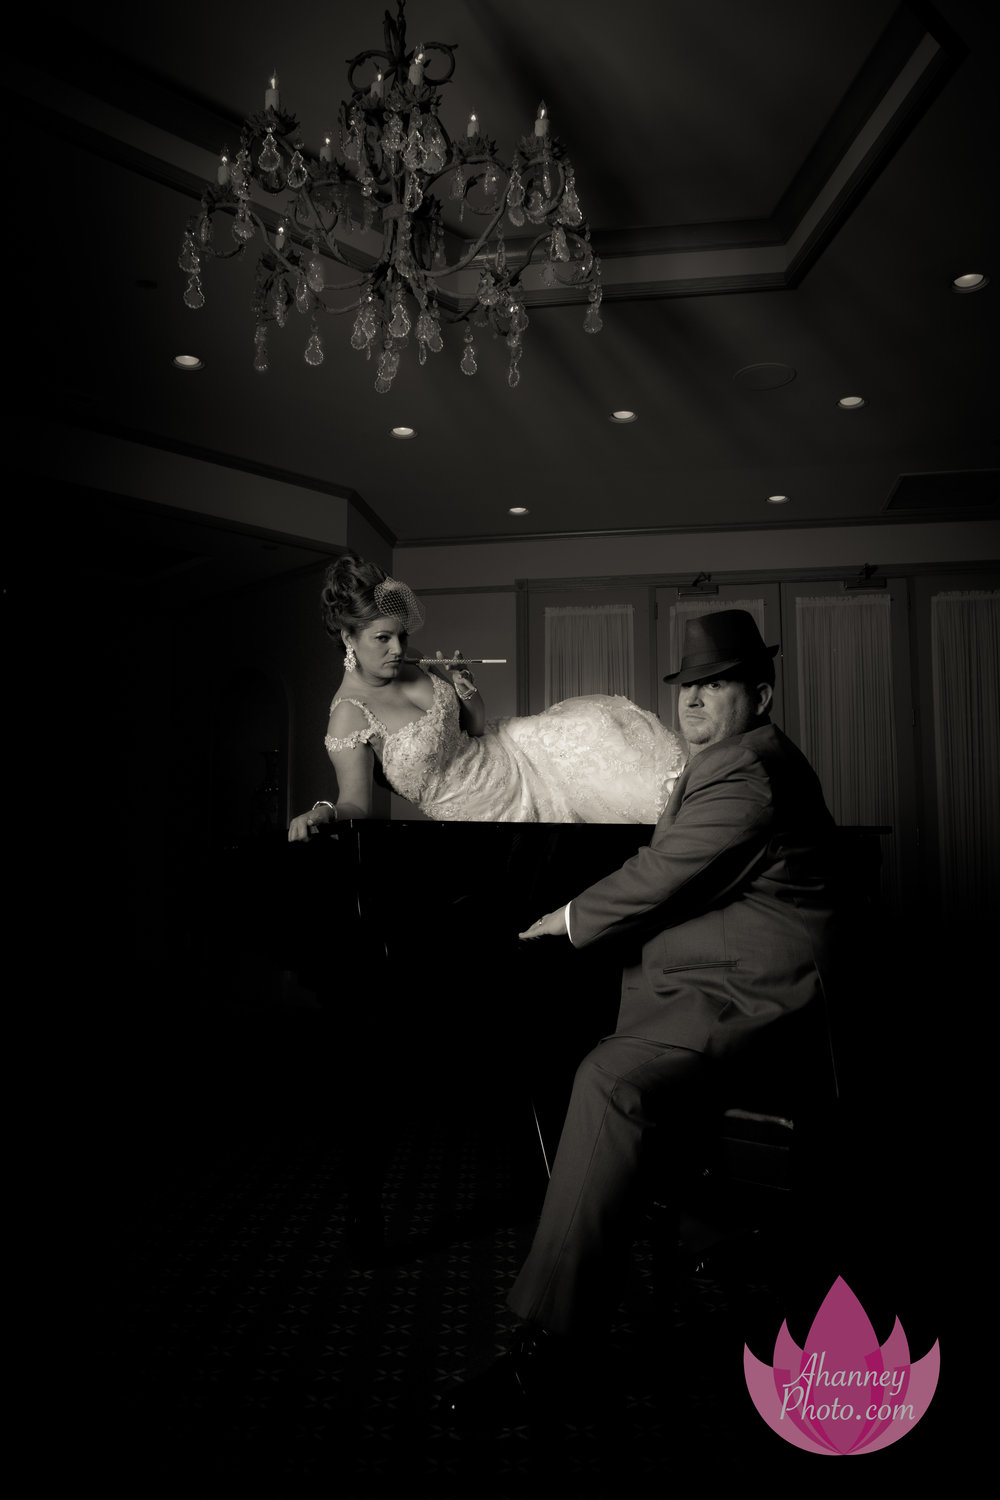 Bride on Piano and Groom